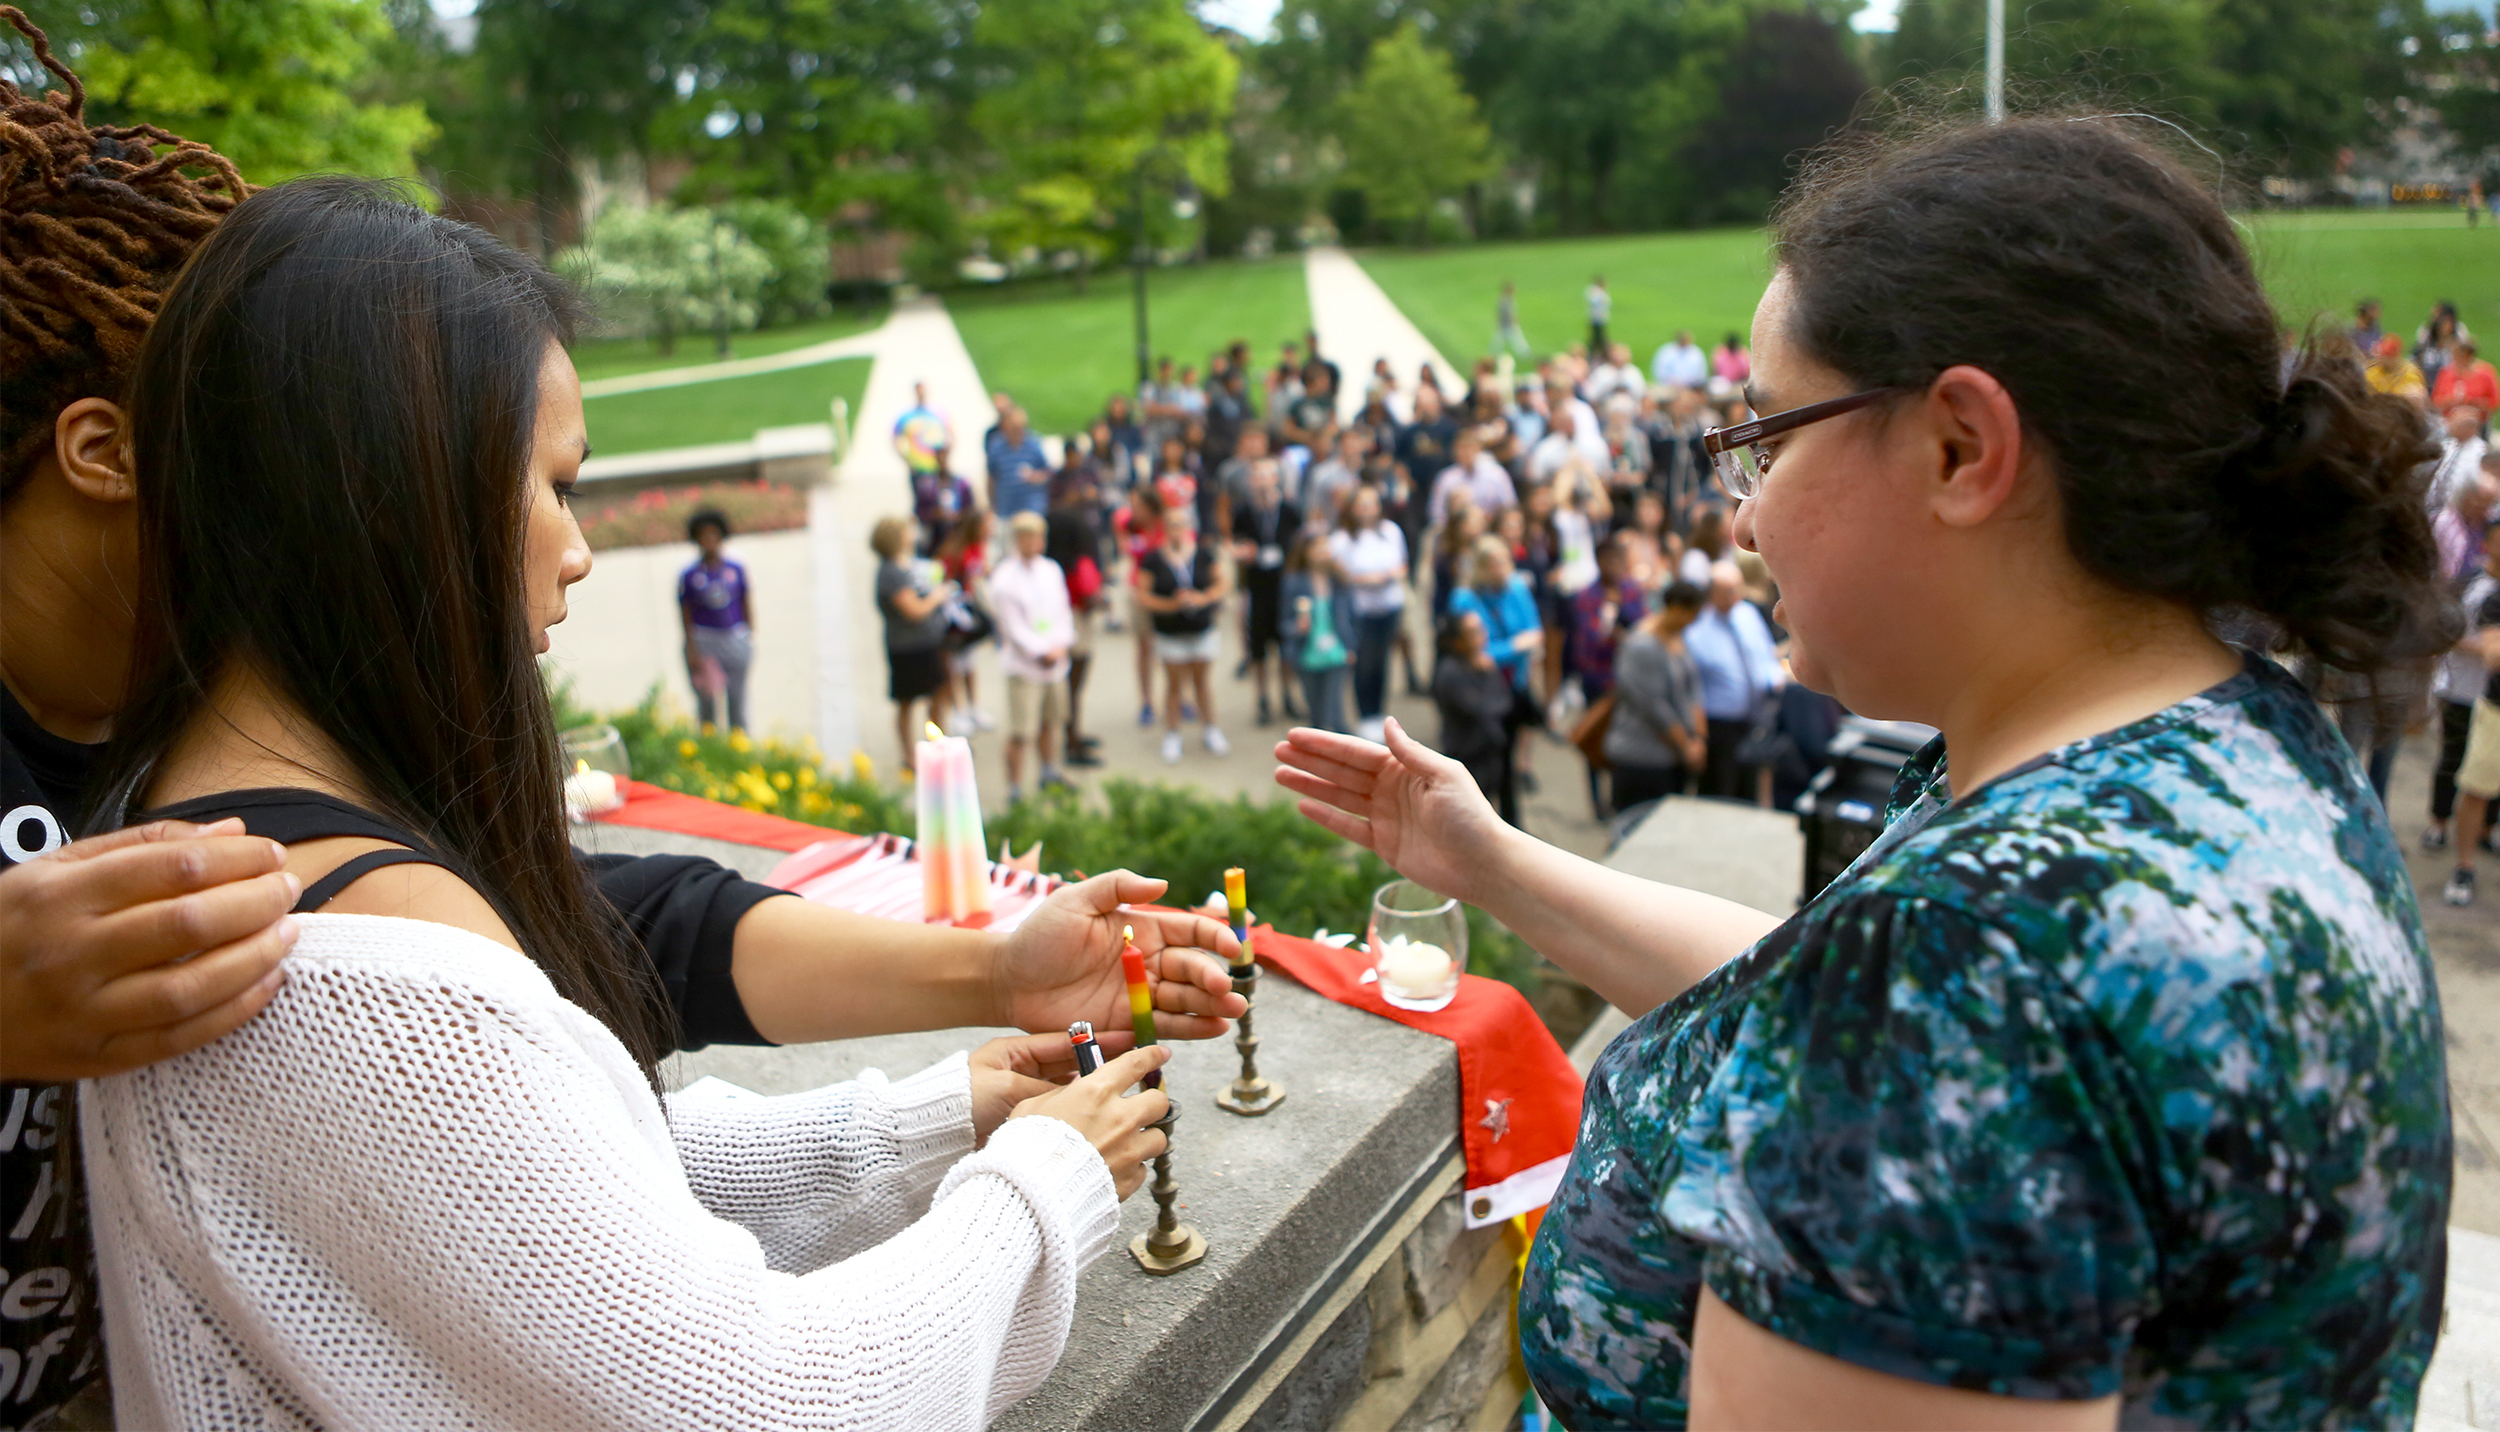 Lianne Luu, left, and Lia Talmas light candles on the steps of Old Main to start the candle light vigil honoring the victims of the Orlando, Florida shooting victims on Monday, June 13, 2016.